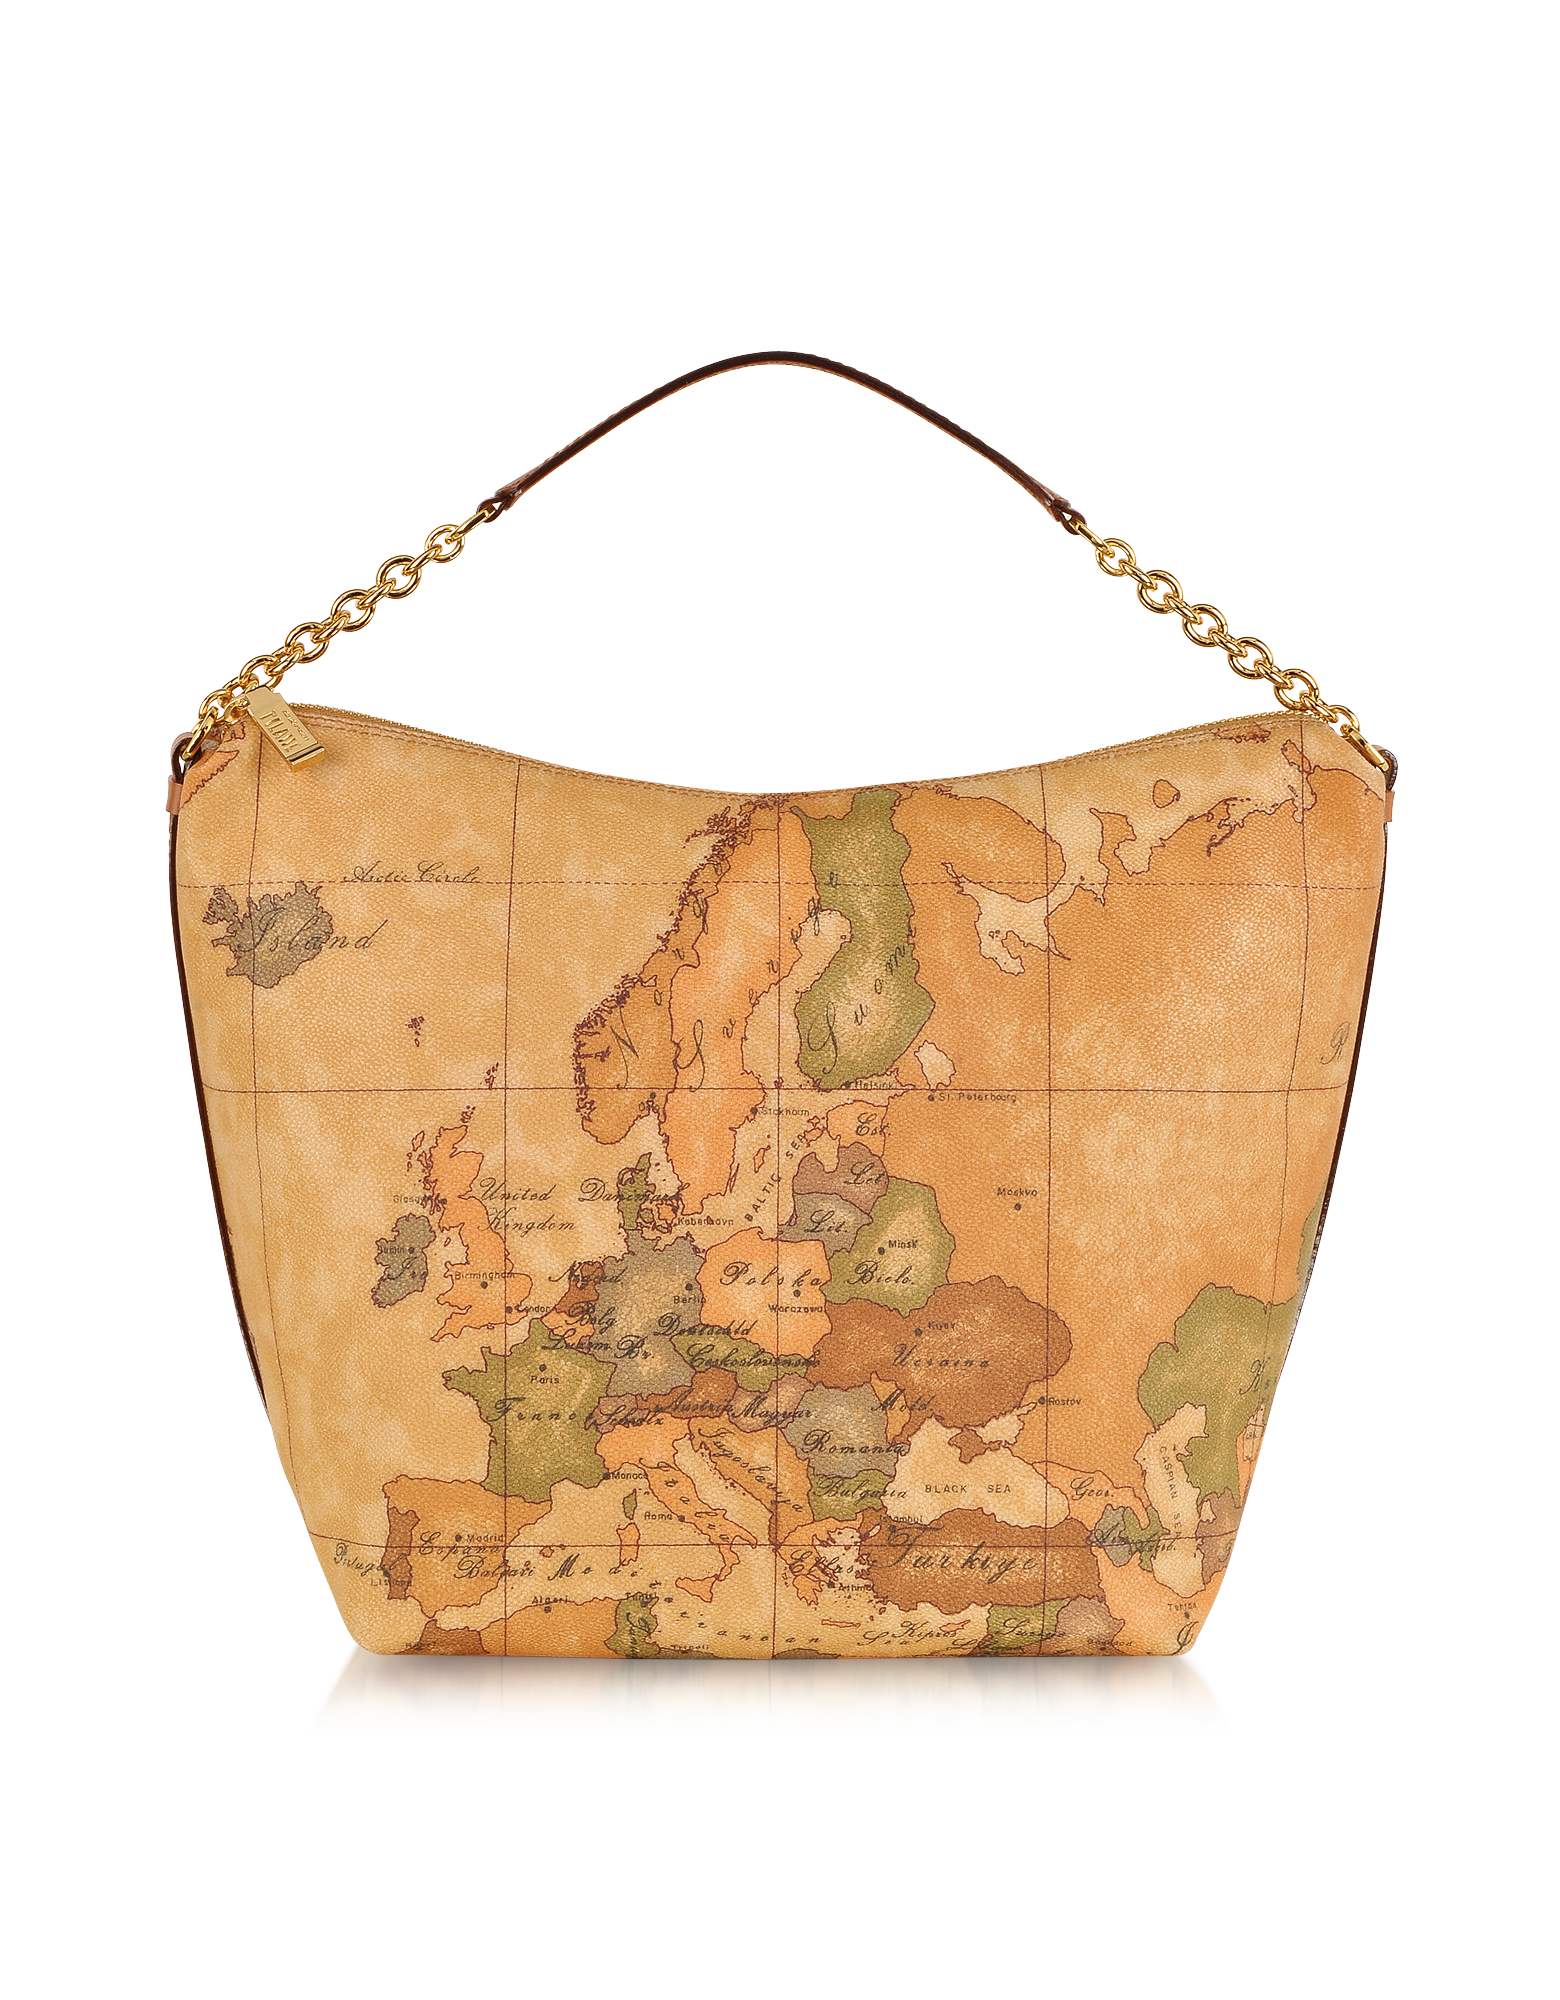 Image of 1a Prima Classe - Geo Printed Medium Contemporary Top Handle Bag